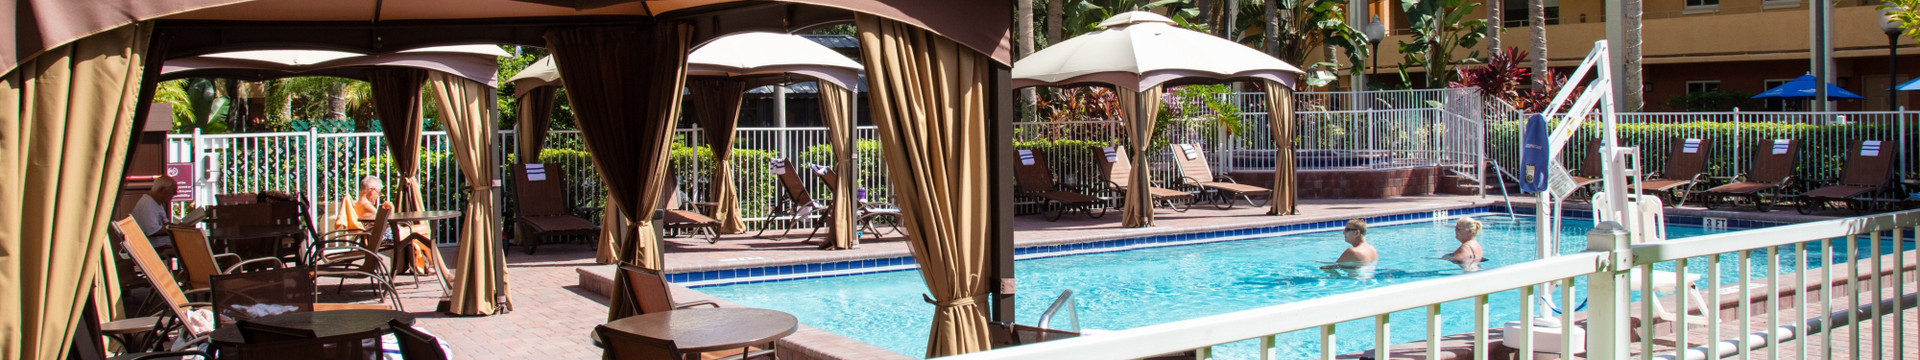 Activities at our Orlando hotel near Sea World | Fun at the Pool